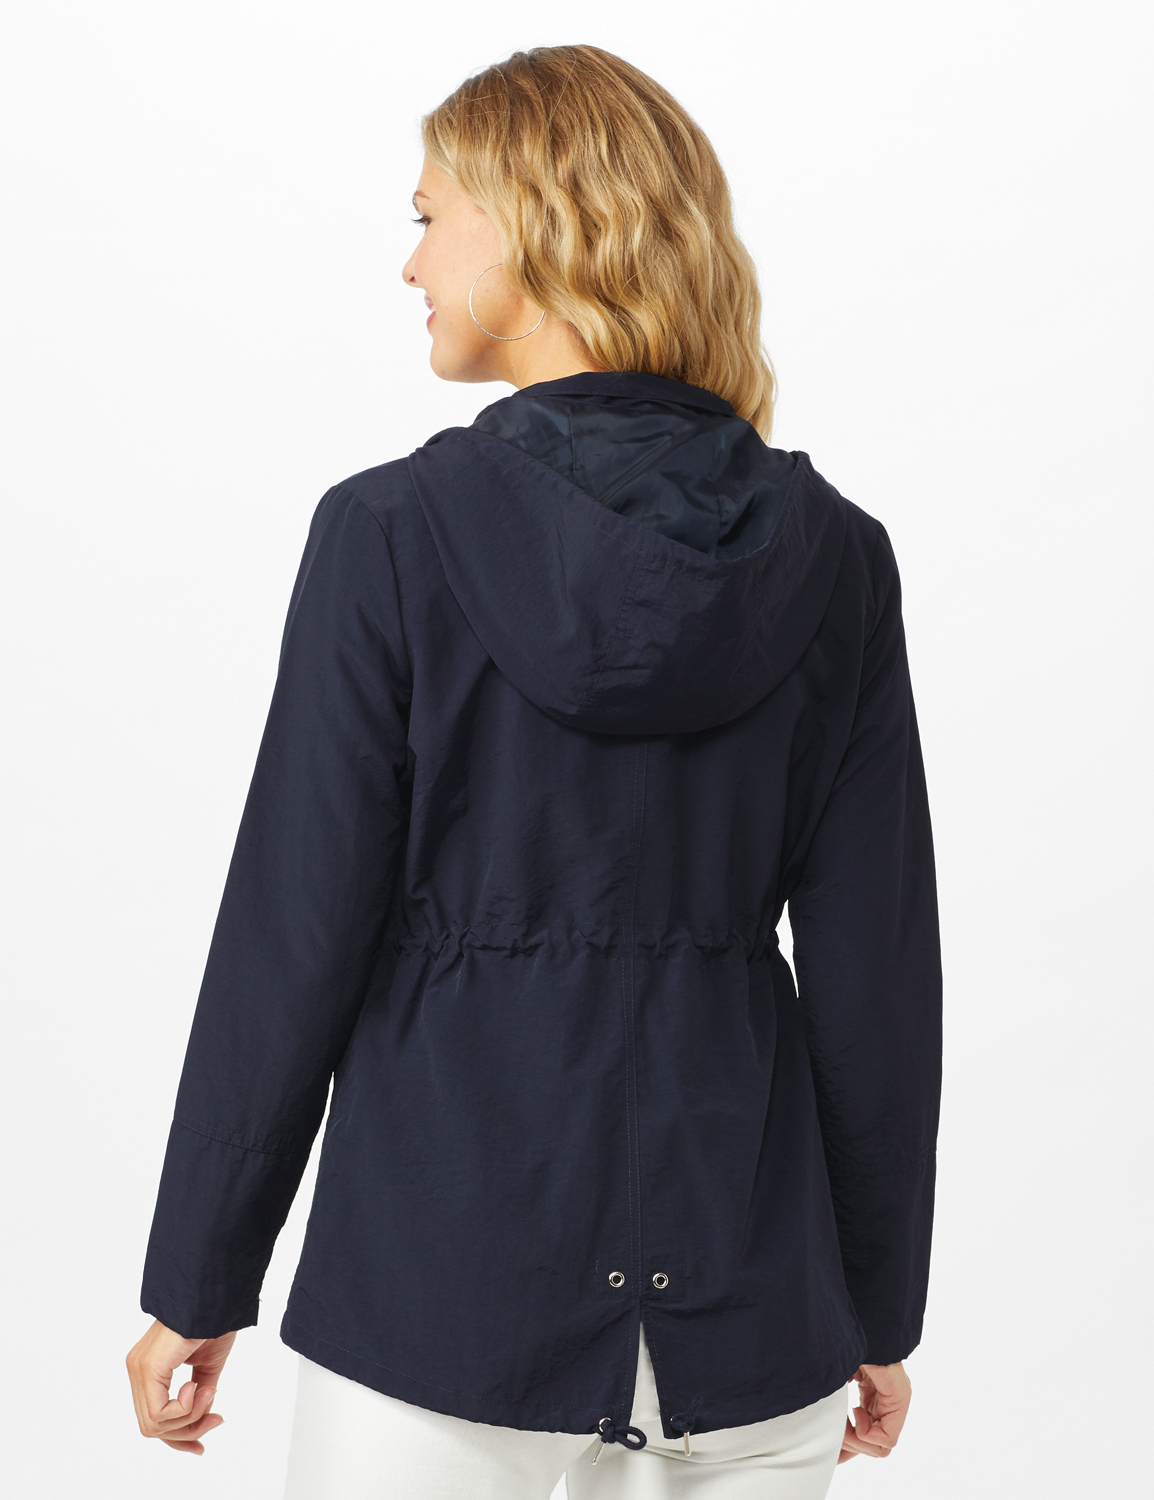 Dry Nylon Hooded Zip Front Utility Jacket with 4 Cargo Pockets and Drawcord -Navy - Back